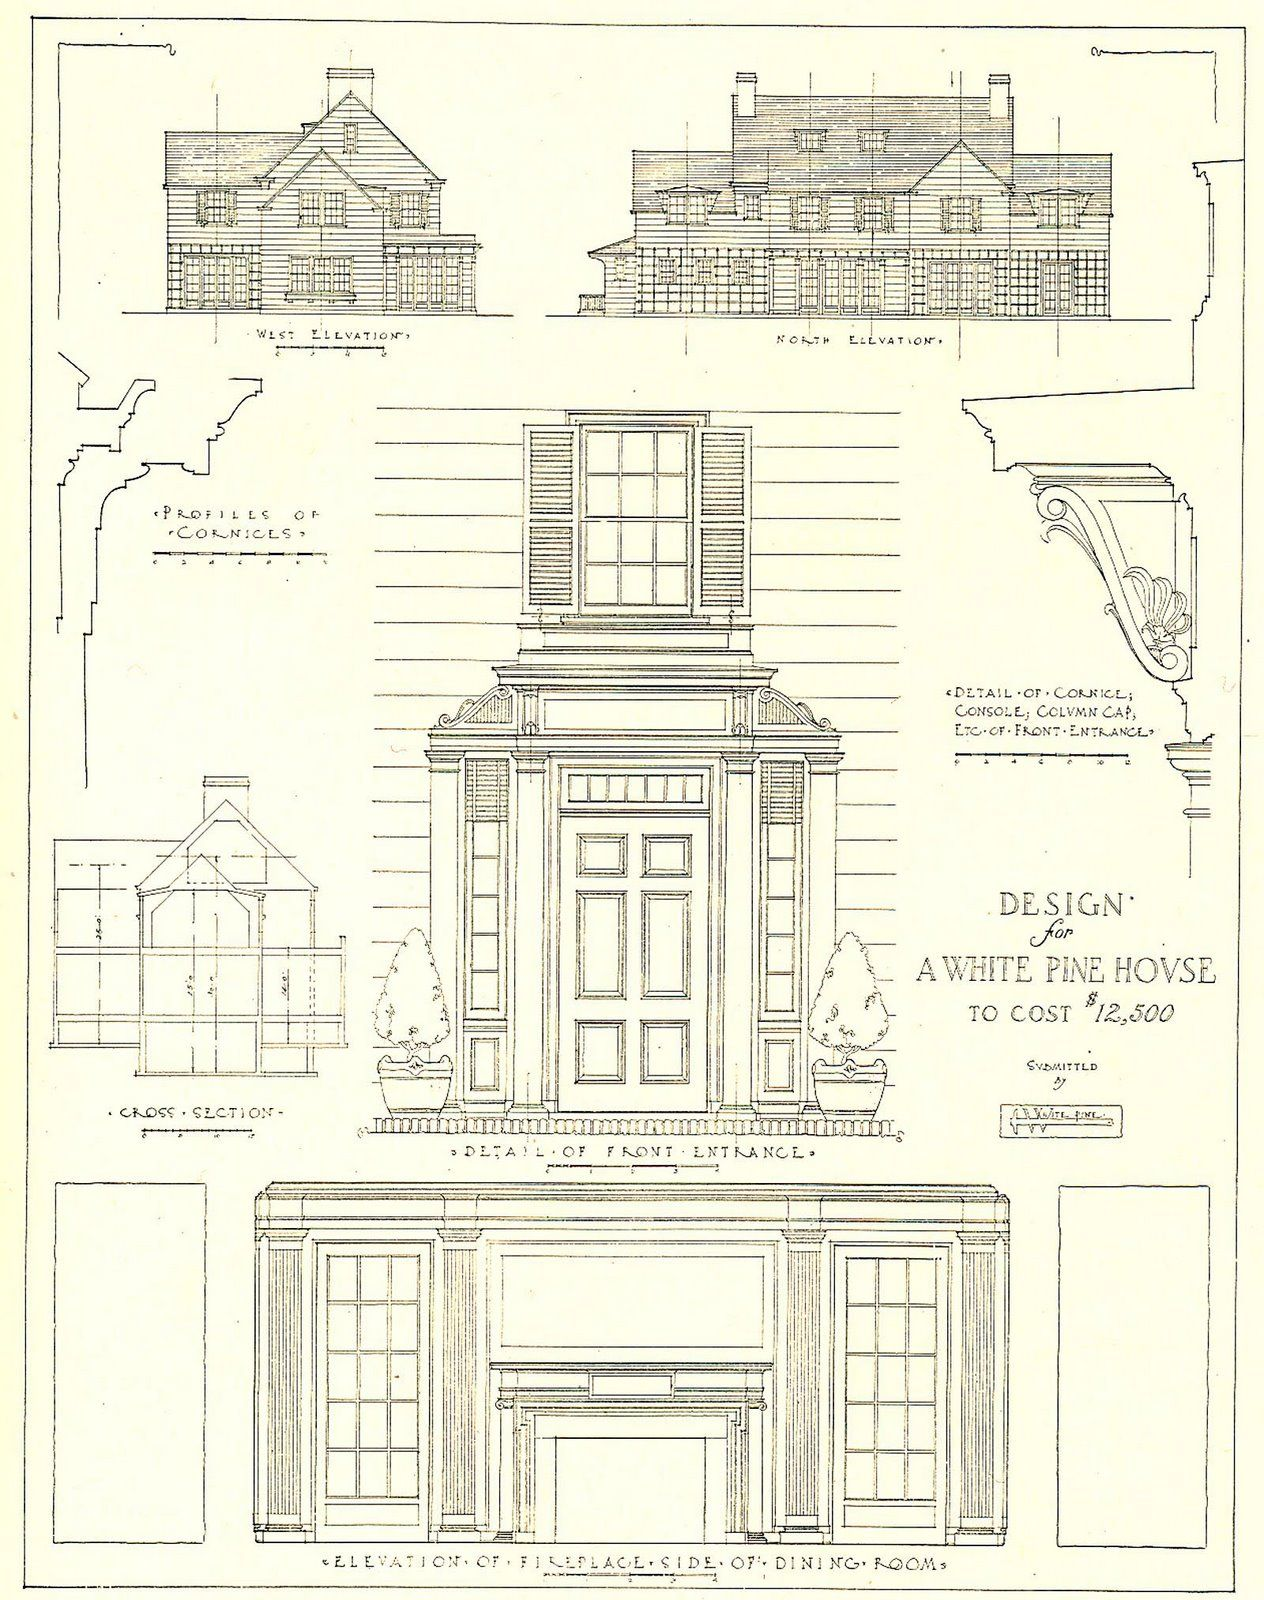 Architecture Drawing Kit 1917 architectural design for a white pine house costing 12,500